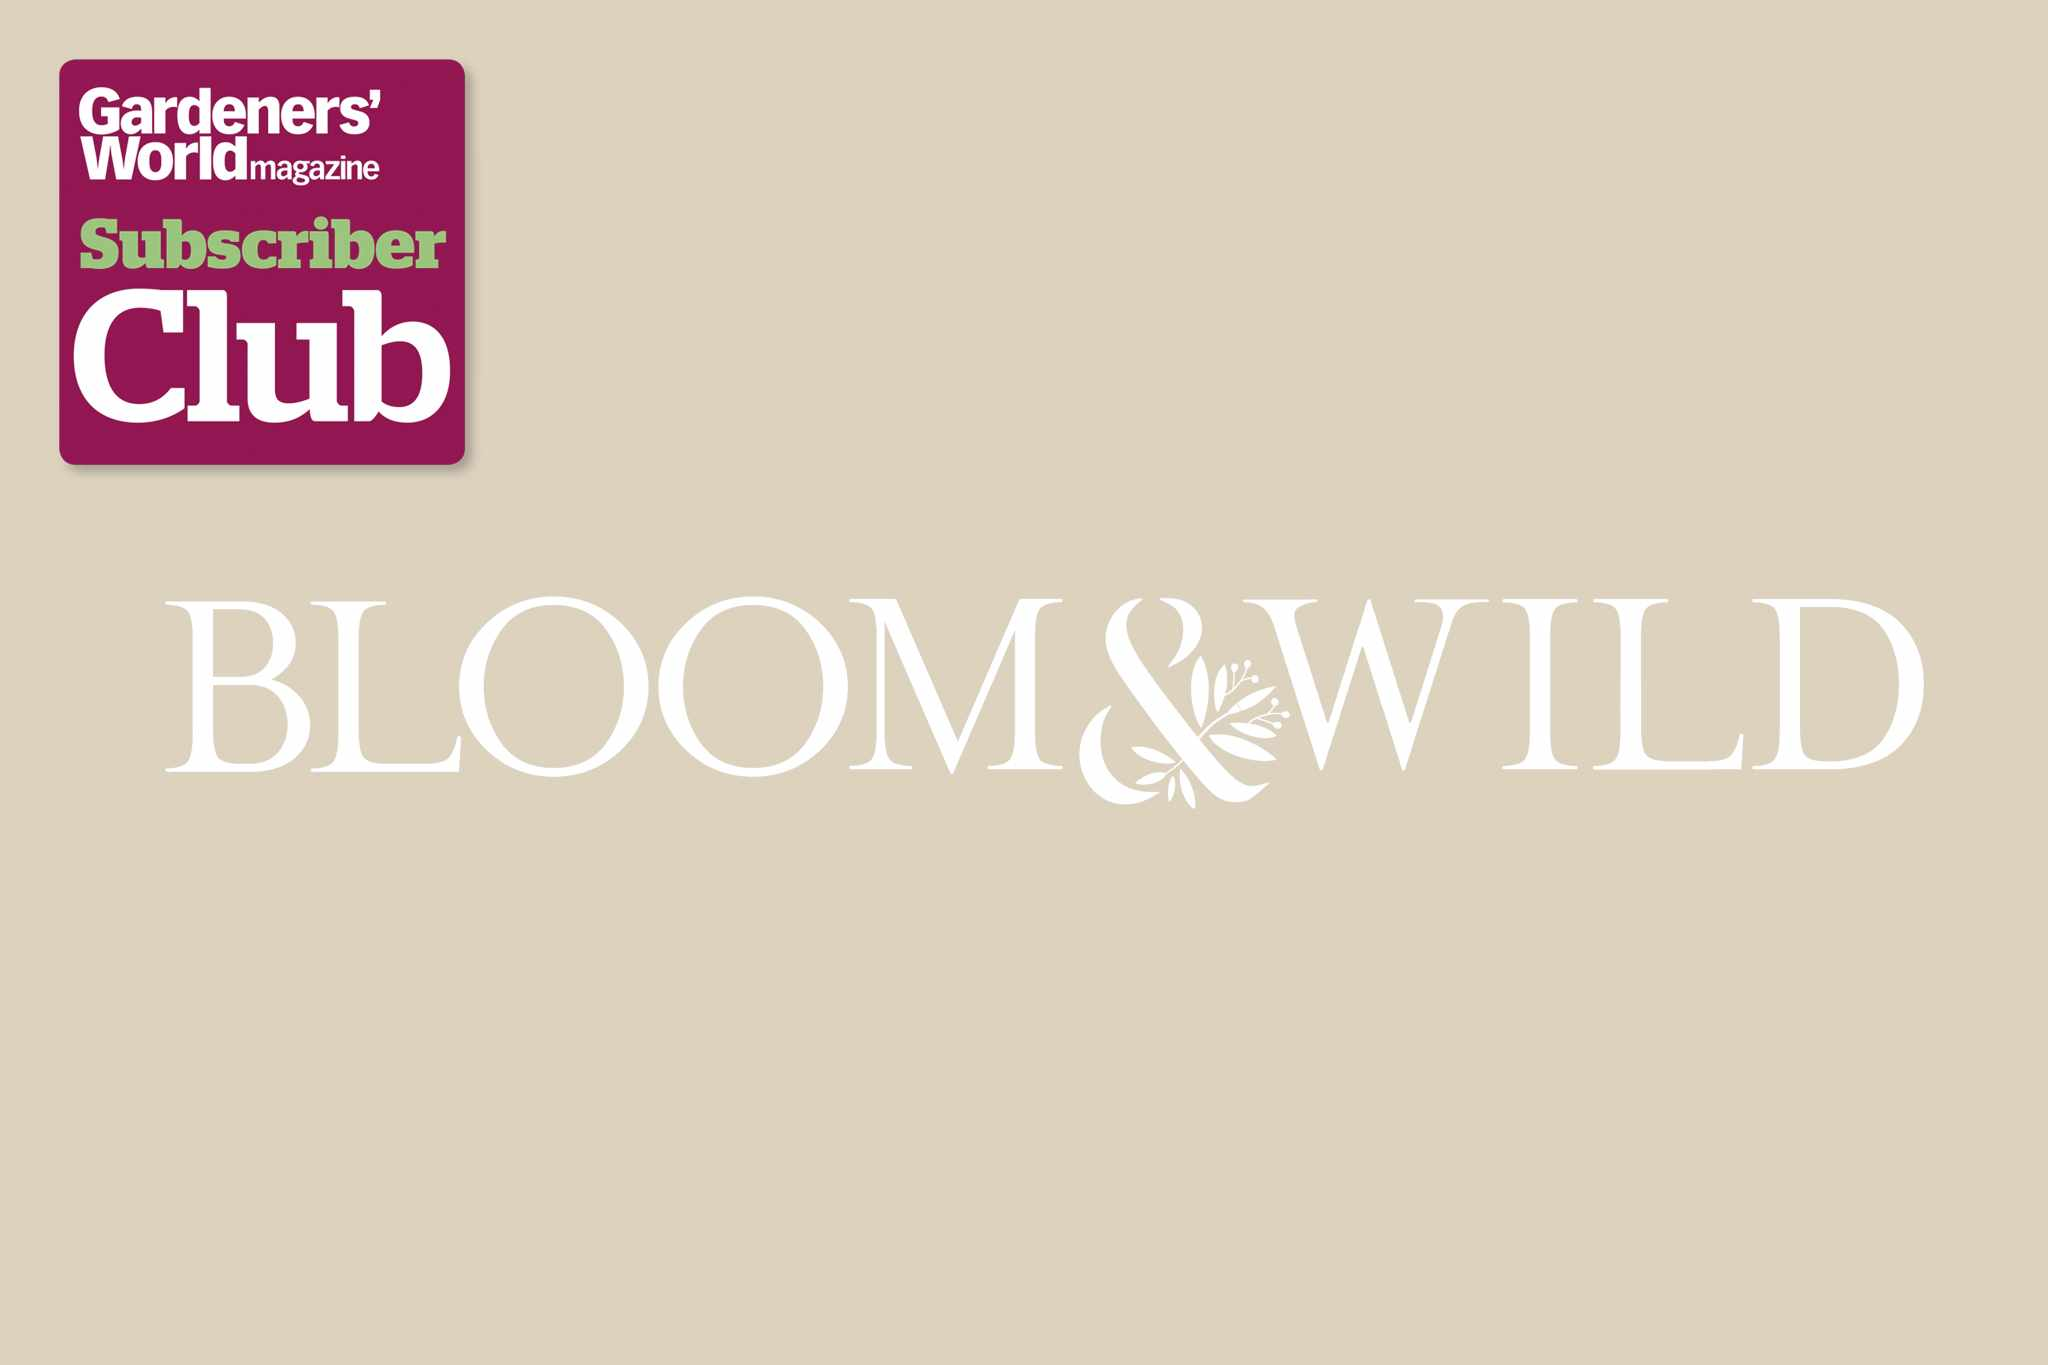 Bloom & Wild BBC Gardeners' World Magazine Subscriber Club discount